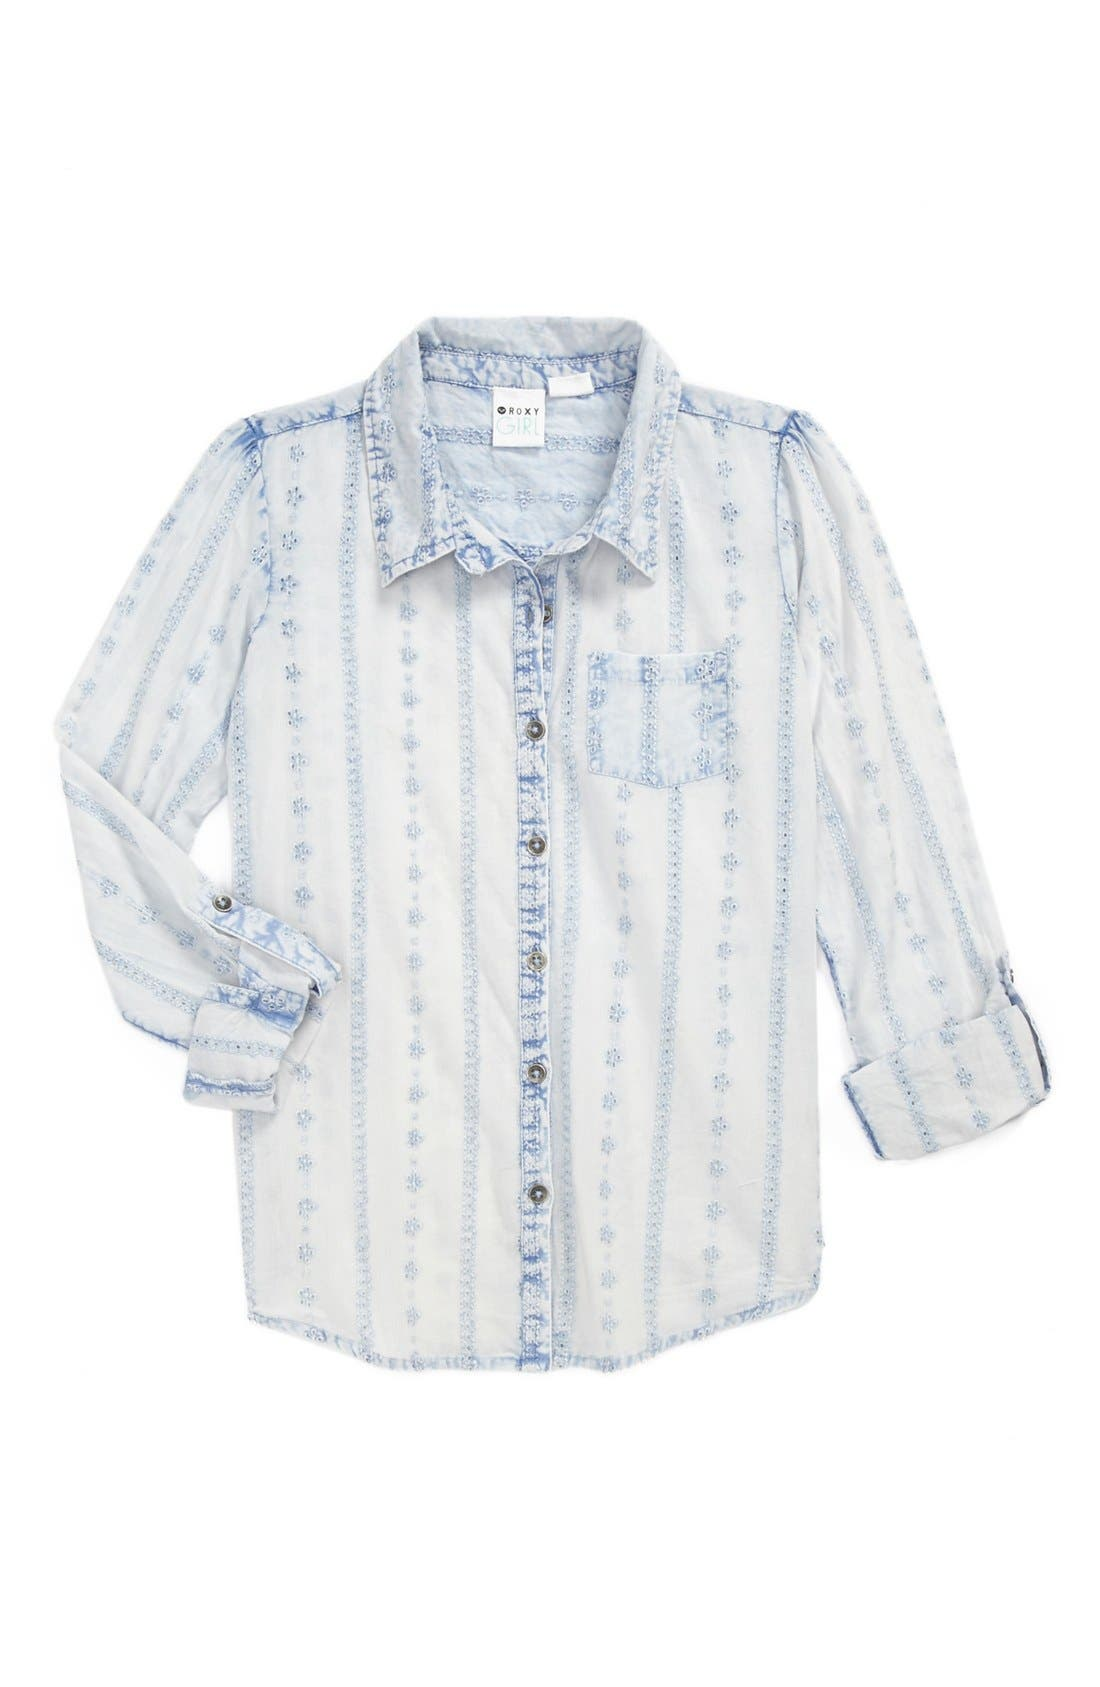 Main Image - 'Wise Up' Washed Woven Shirt (Big Girls)